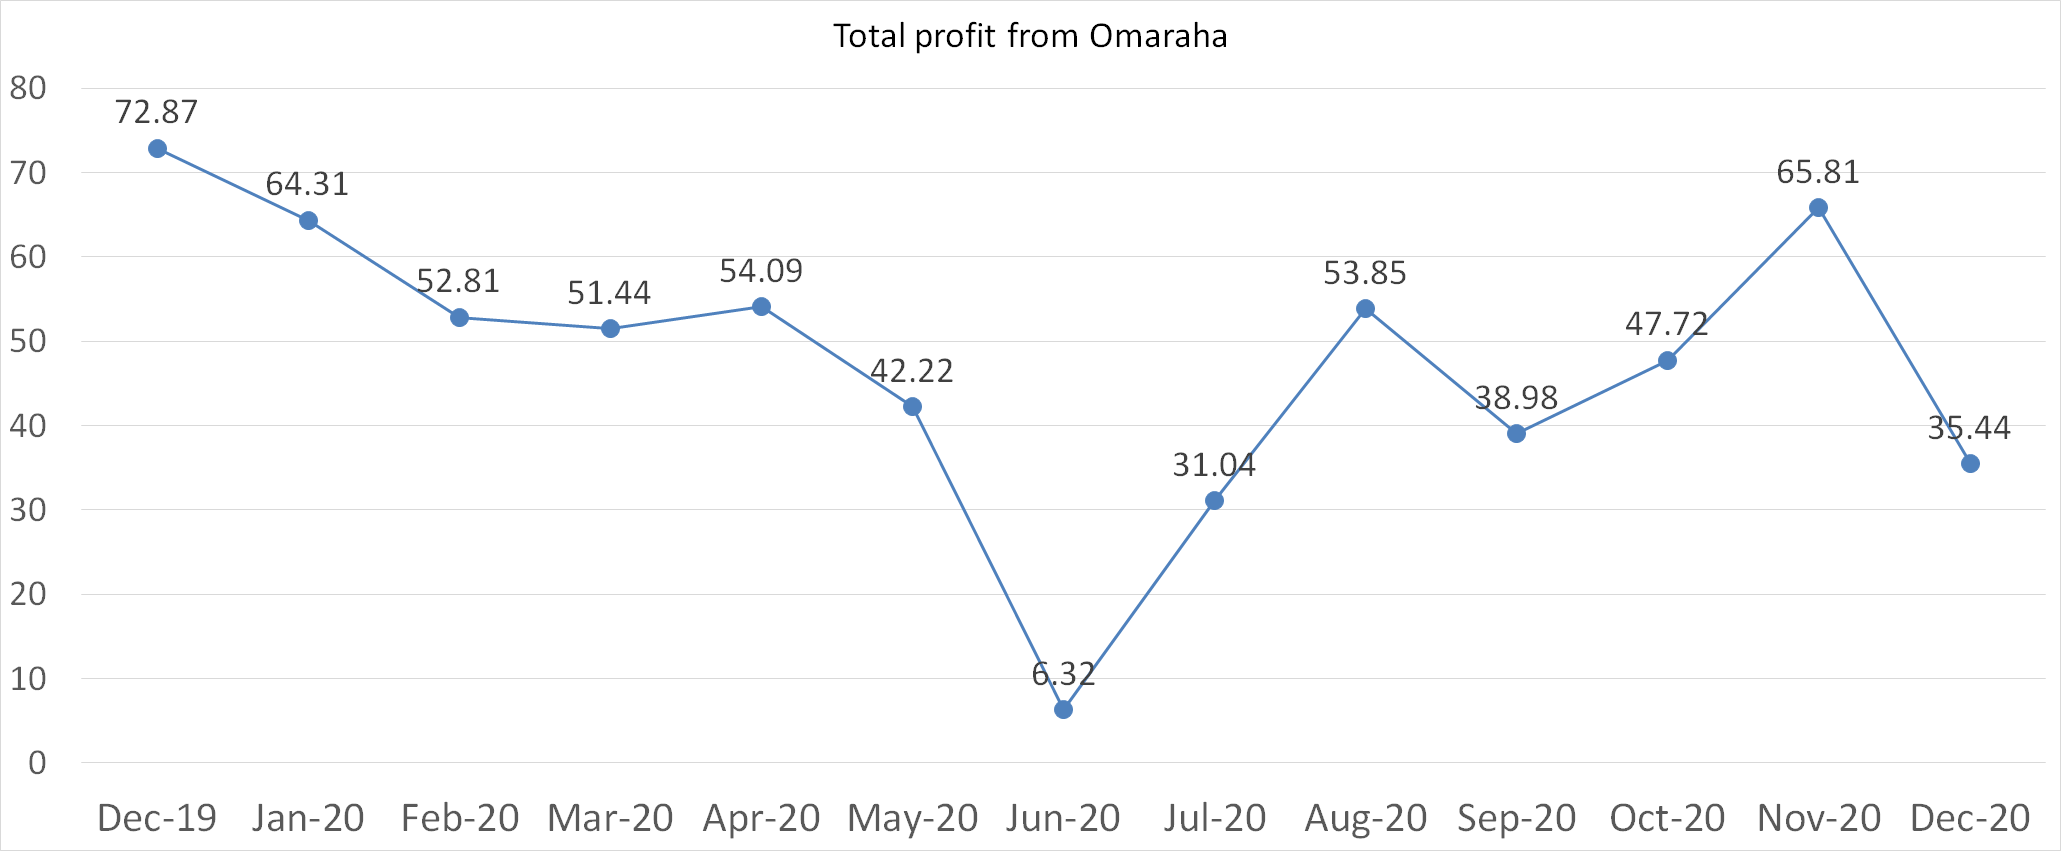 Total profit from Omaraha in december 2020